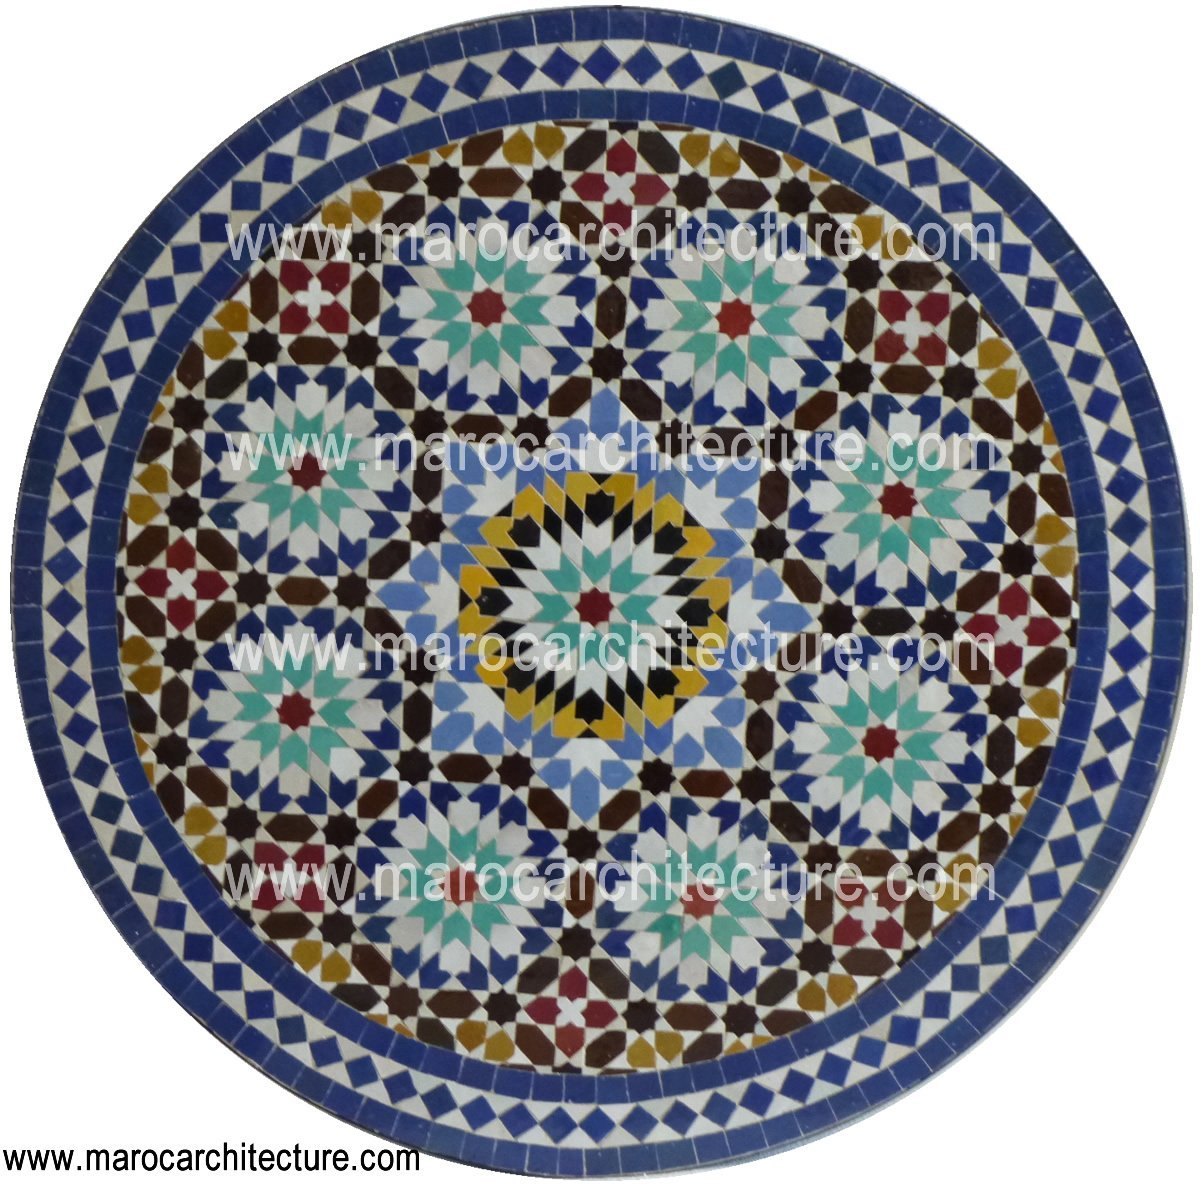 MOROCCAN MOSAIC TABLE 1906